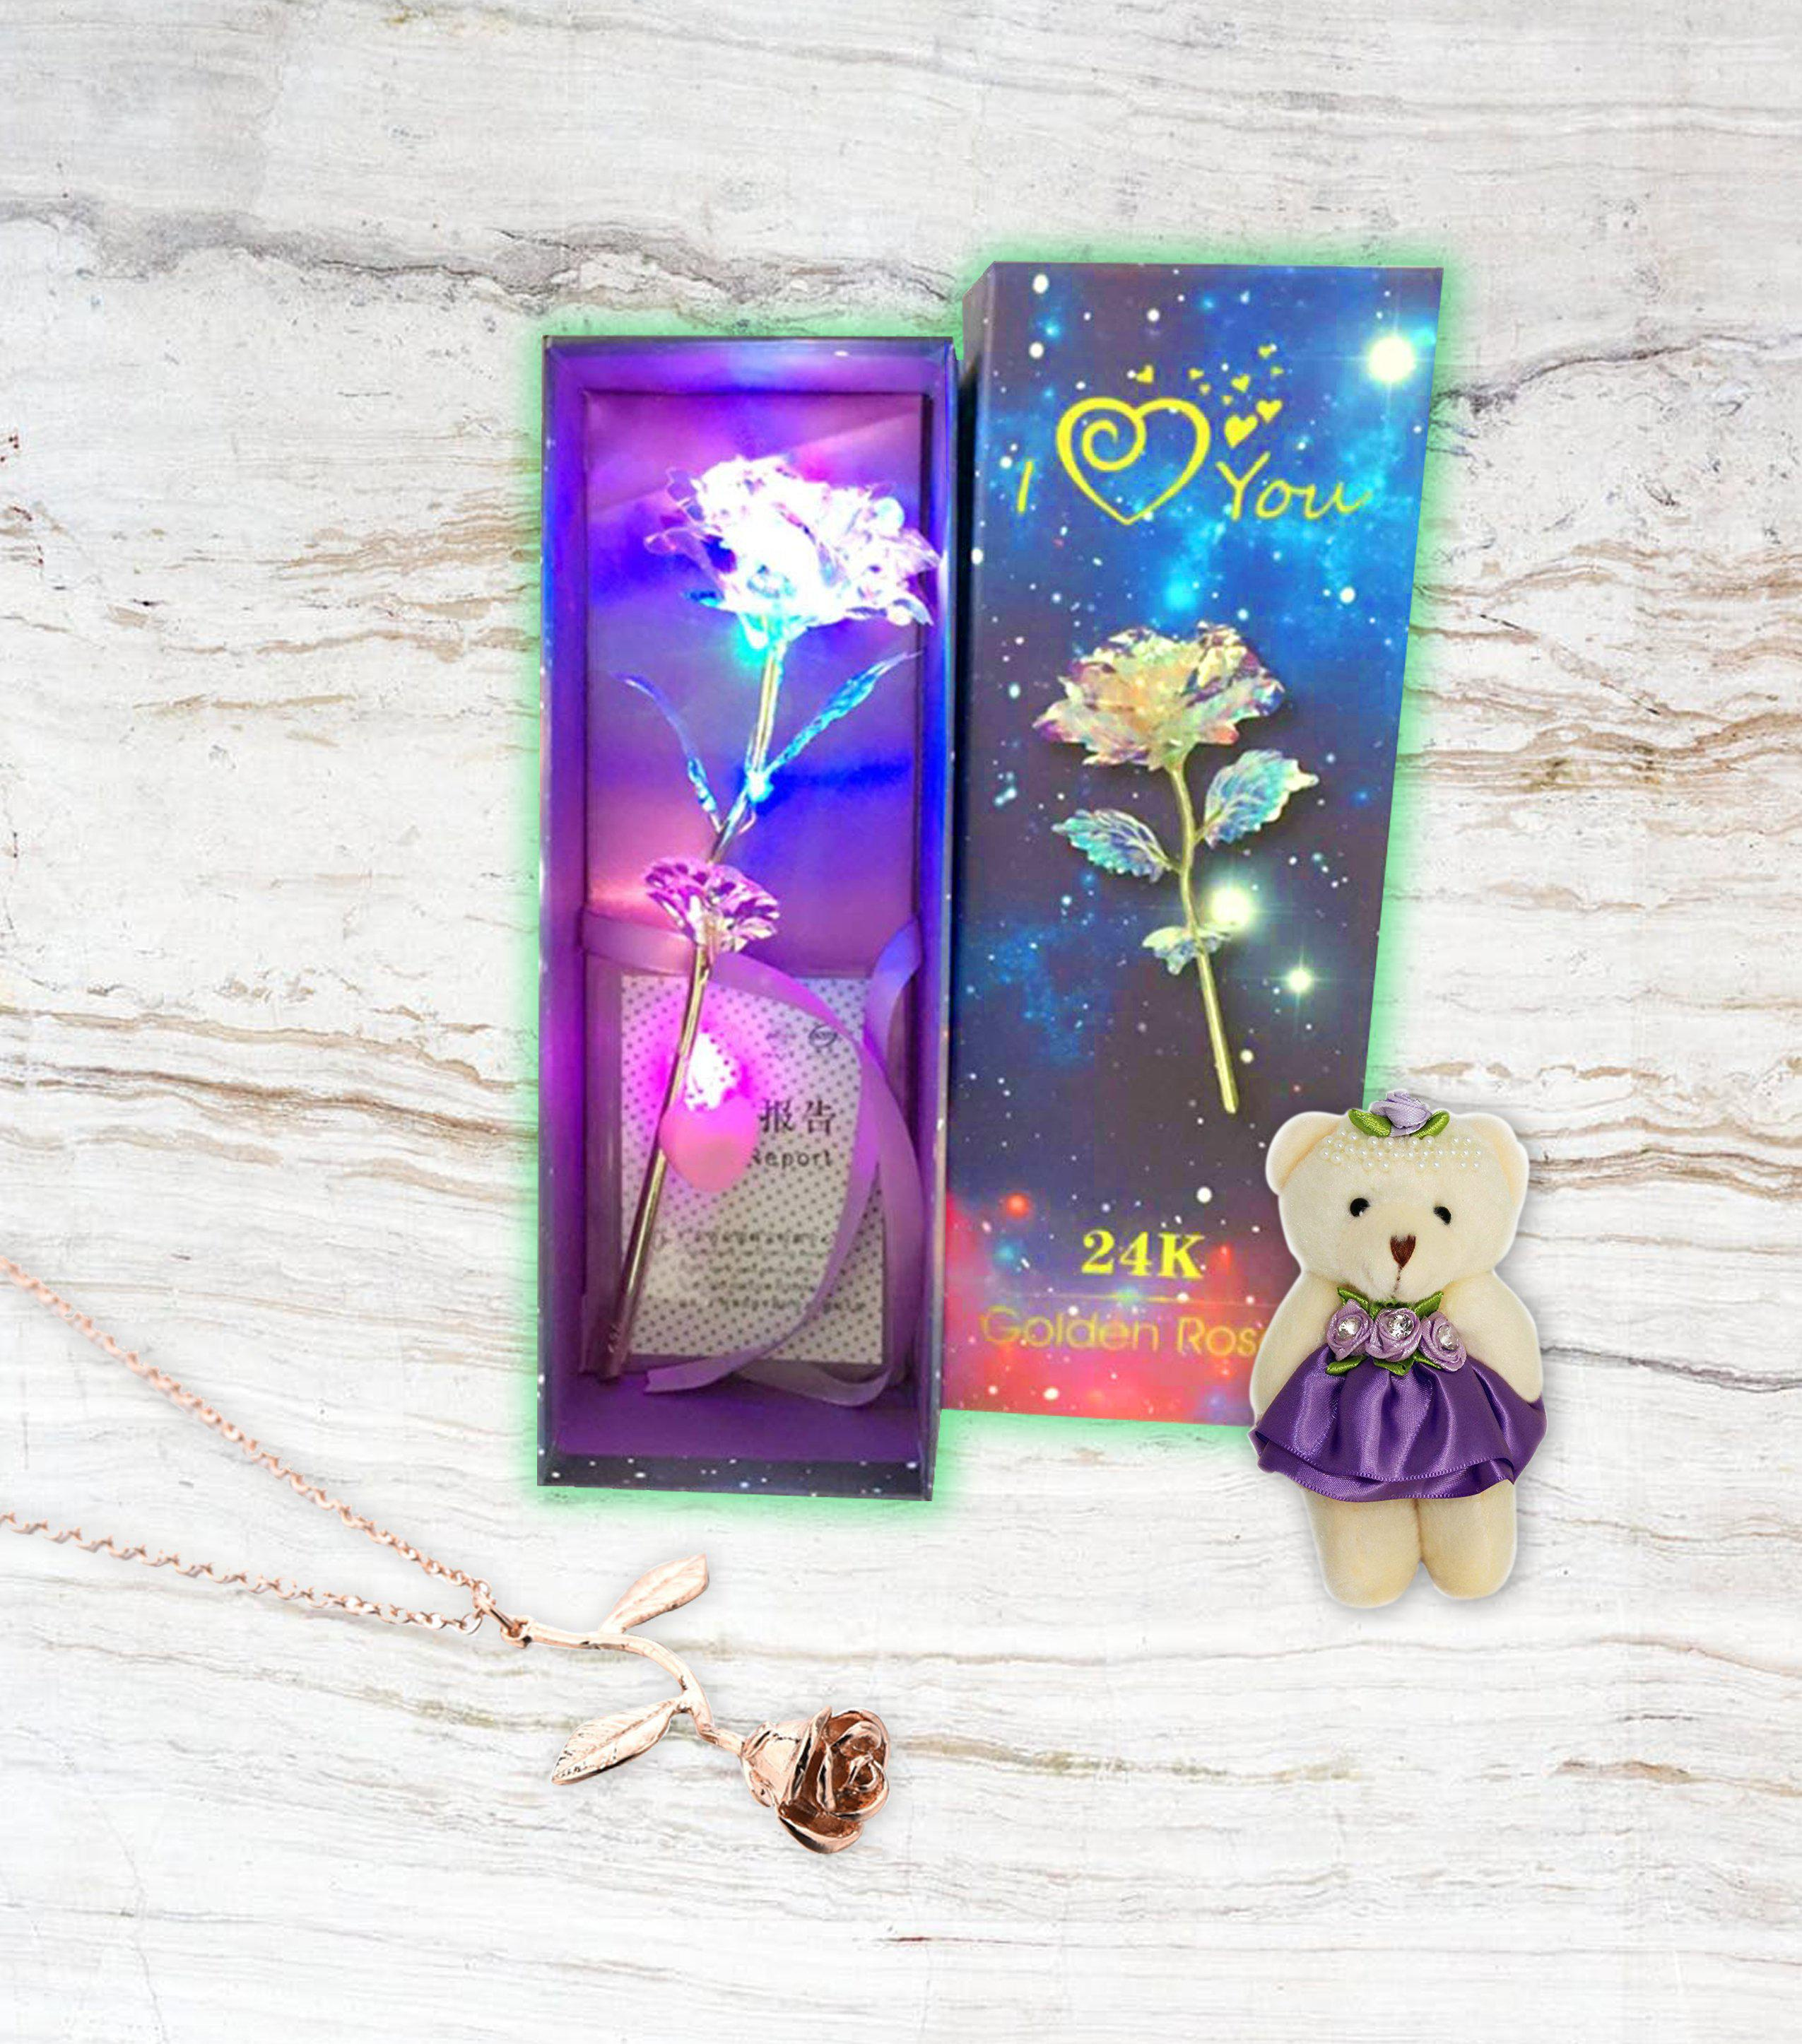 MyGiftsmate galaxy crystal rose flower 24k infinity eternity handmade led flower roses light bear lovers birthday cute jewelry gift women girls 24k unique gifts valentine girl her wife anniversary engagement love - MyGiftsMate